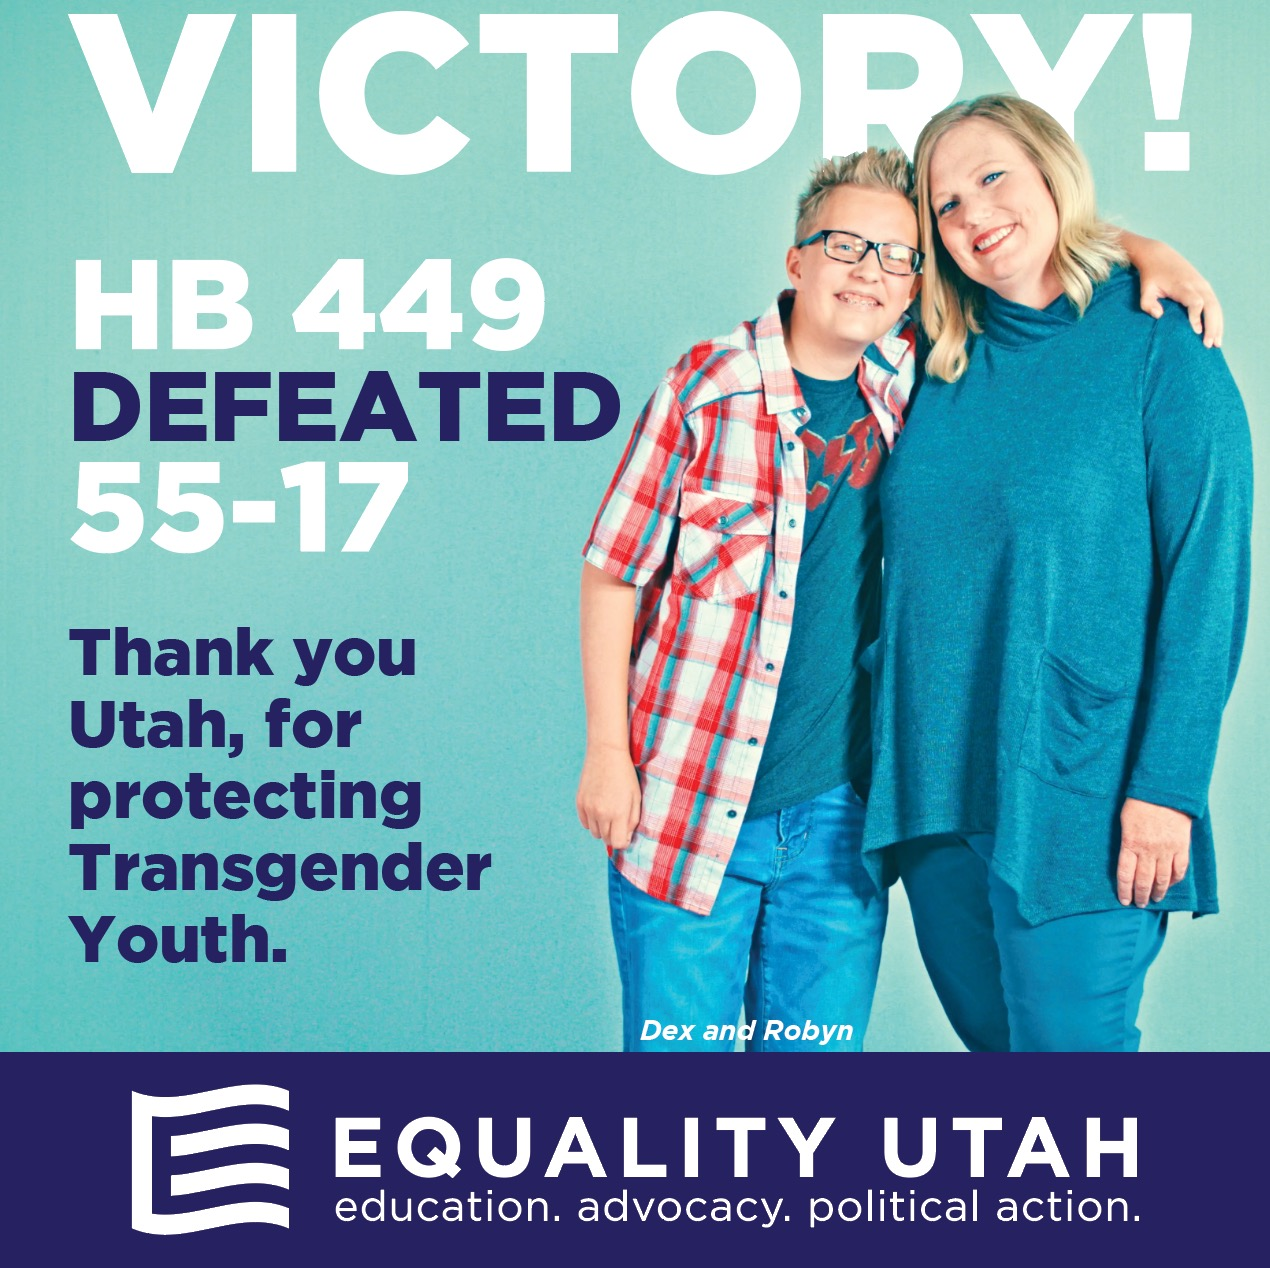 Victory Graphic for the defeat of HB 449, protecting transgender youth